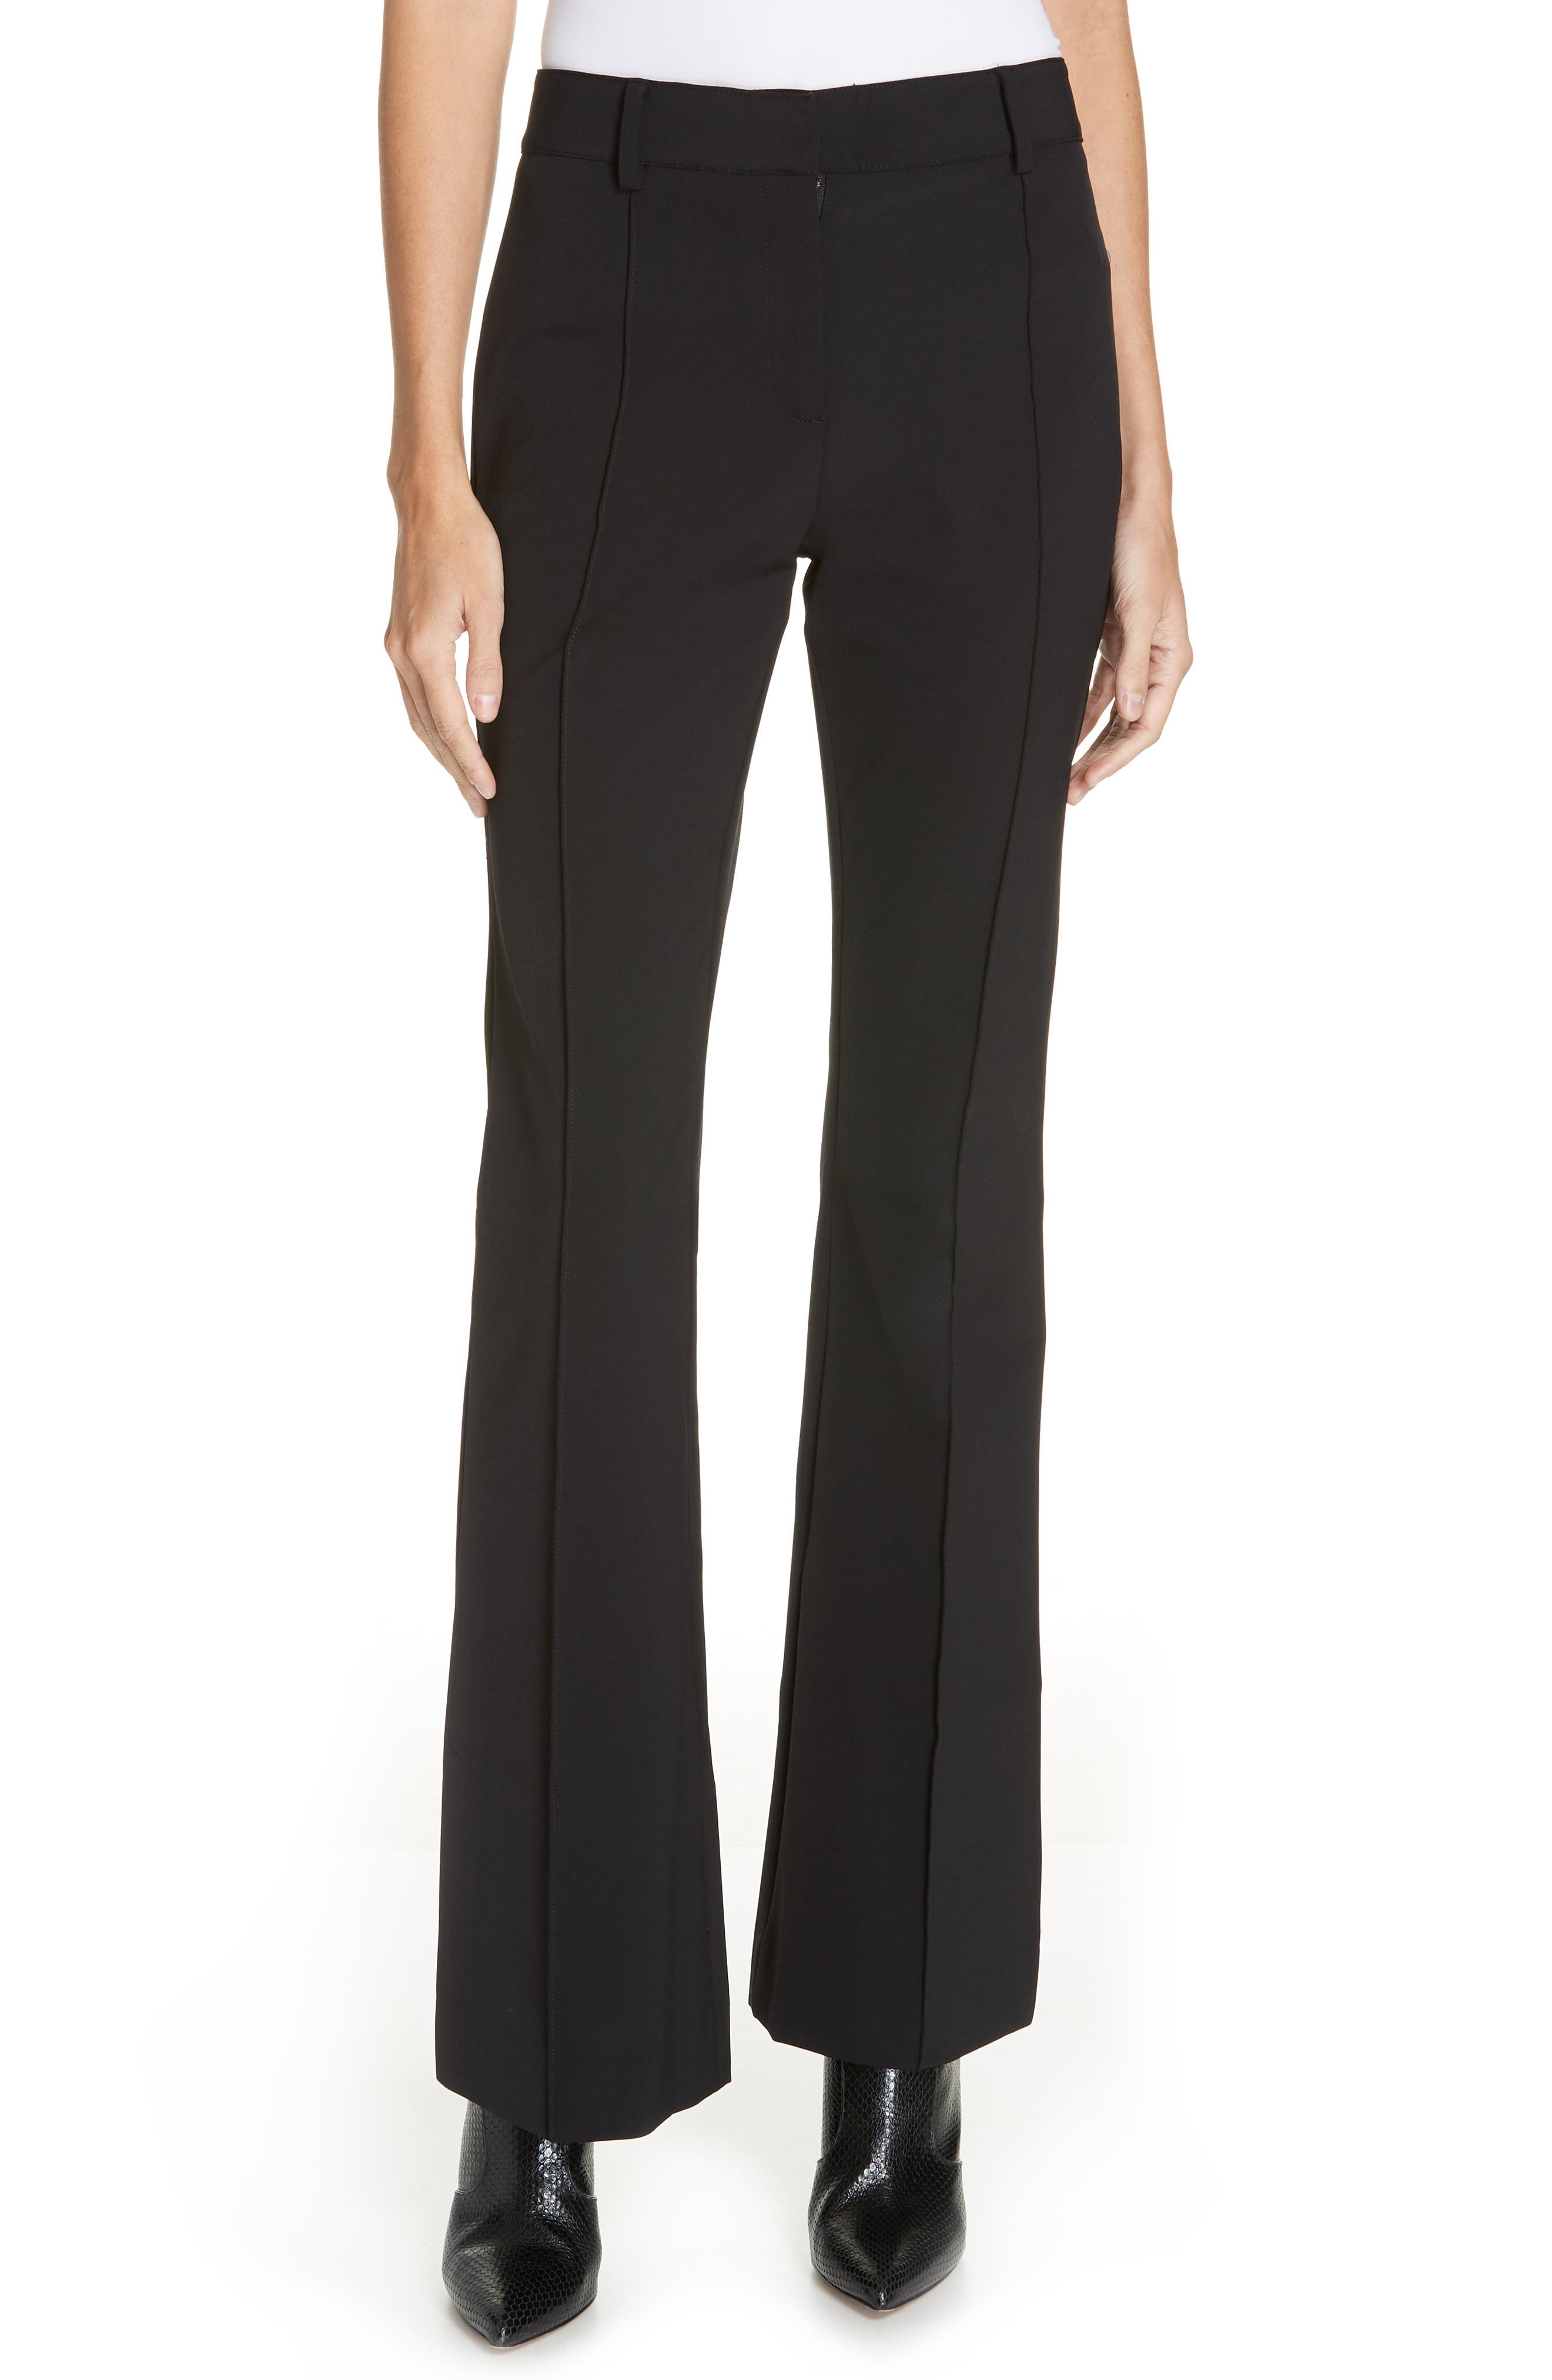 Veronica Beard Hibiscus Flare Pants, Black